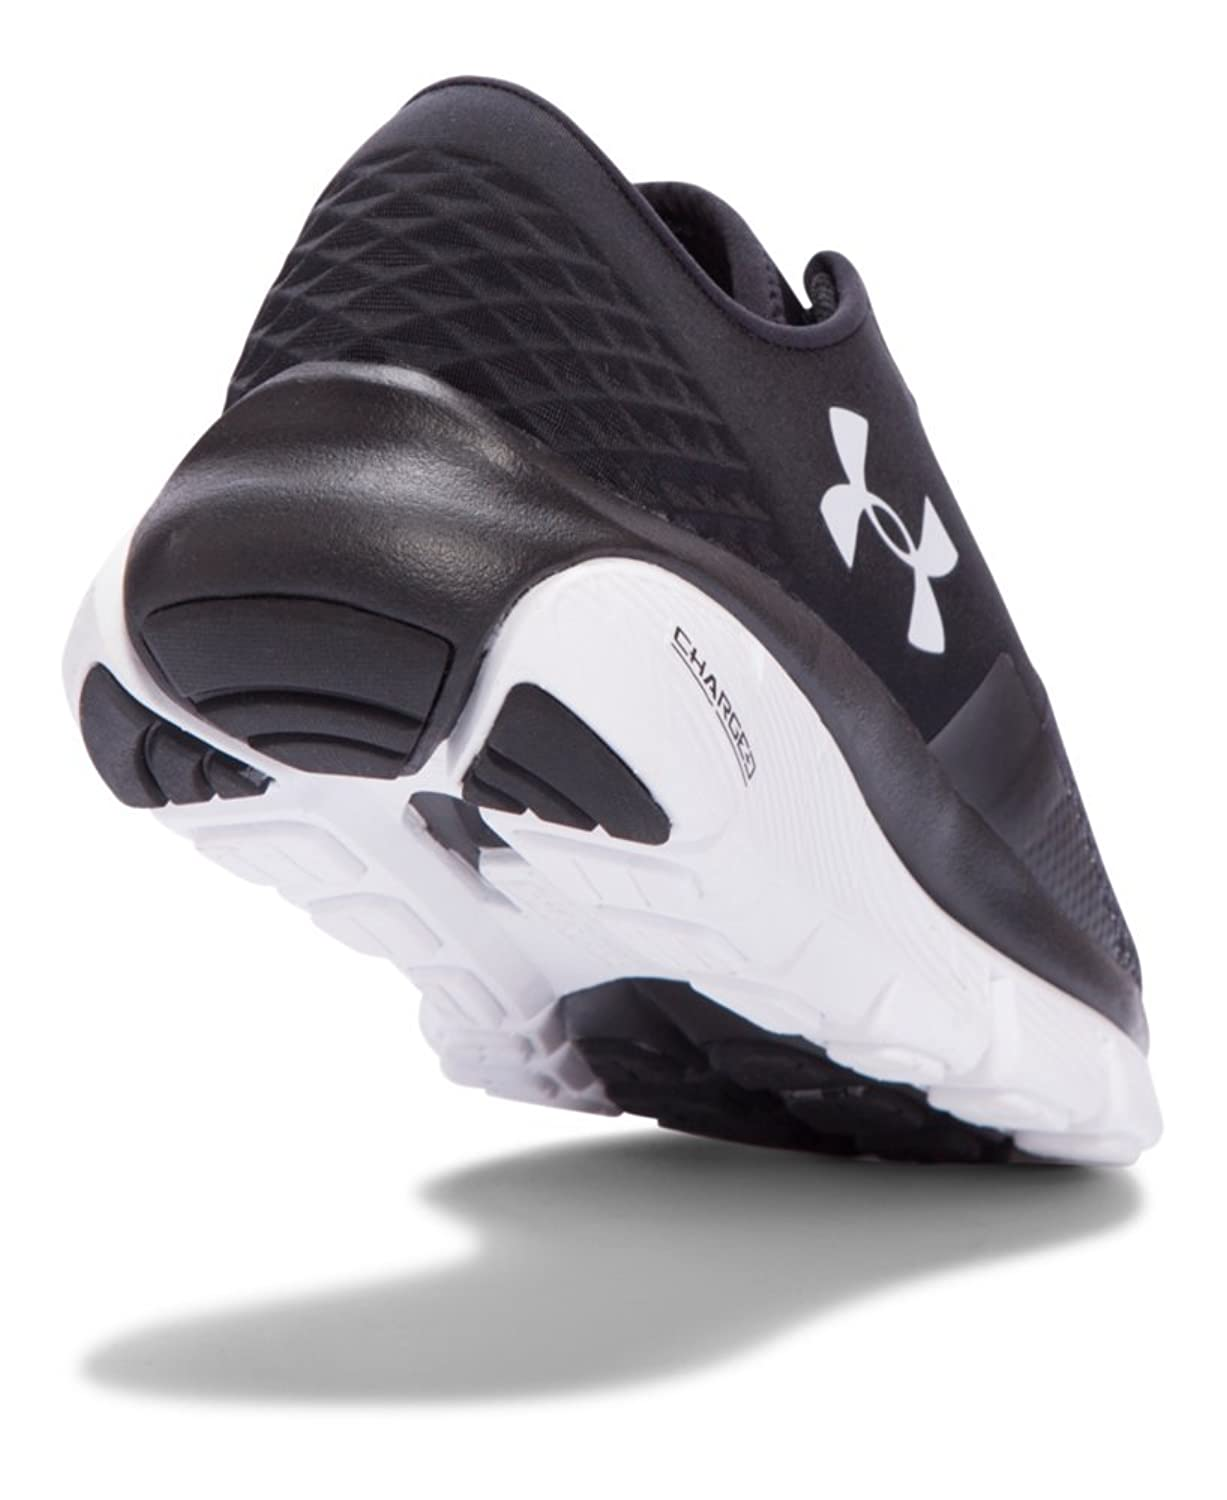 Under Armour Speedform Fortis 2 Dame Løpesko kl3fsgq3